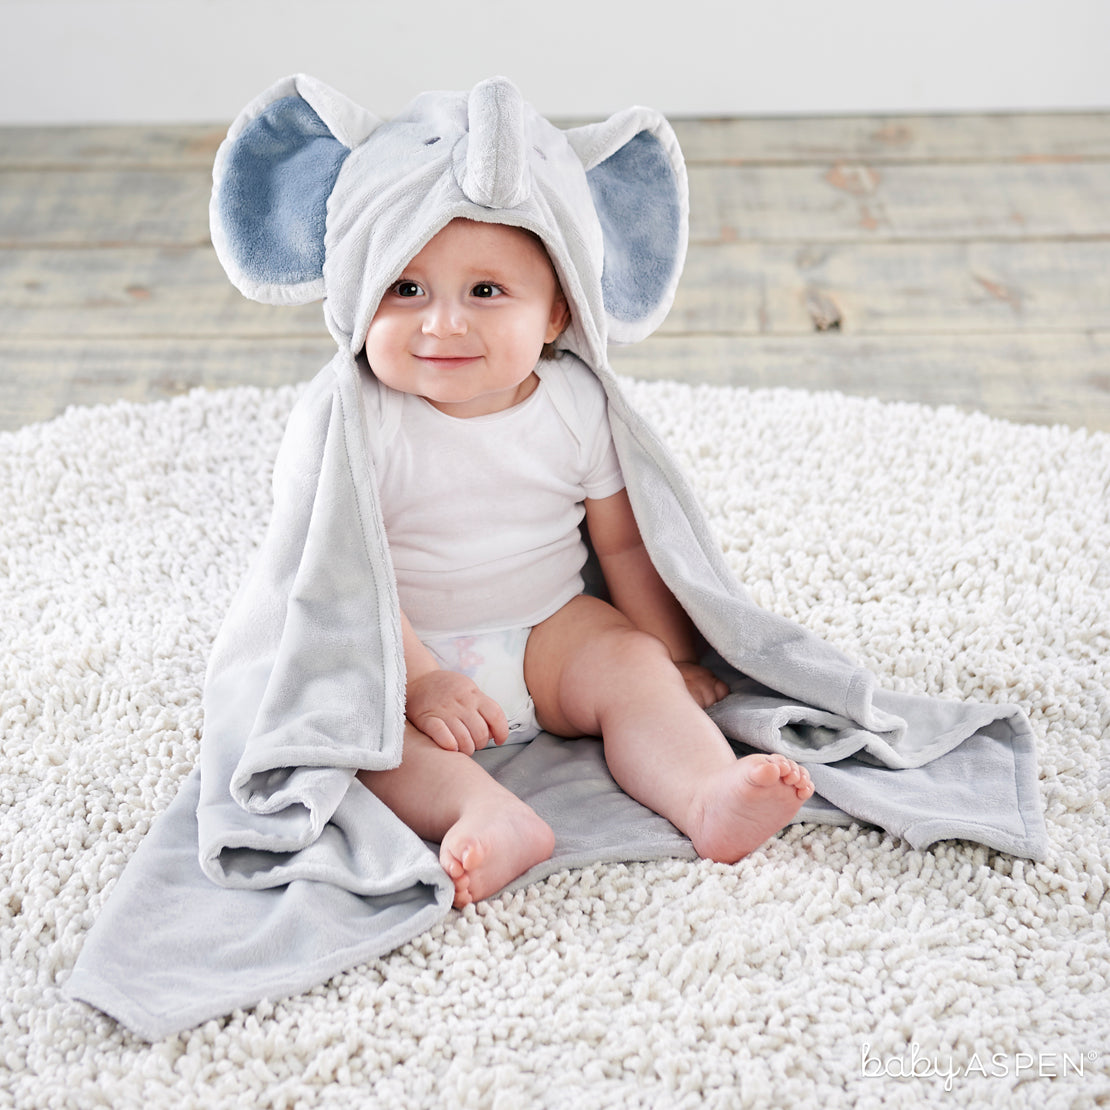 Little Peanut Elephant Hooded Blanket | Cozy Blankets & Lovies to Warm Baby this Winter | Baby Aspen